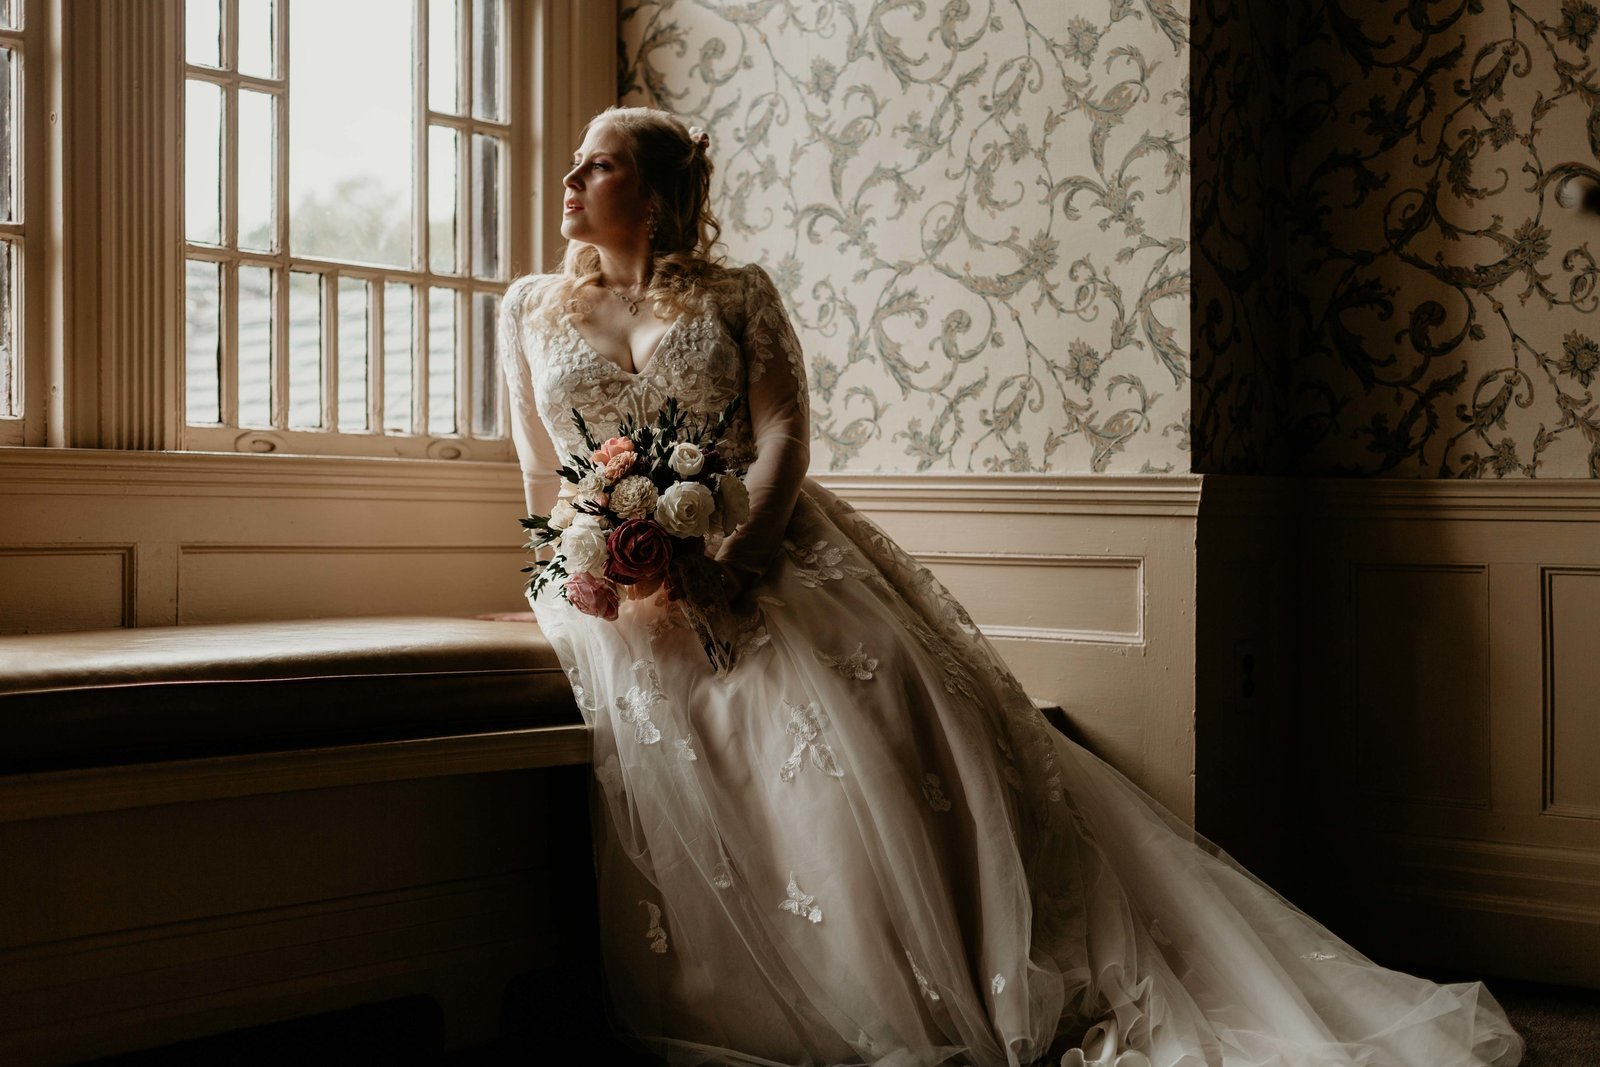 bride gazing out the window.